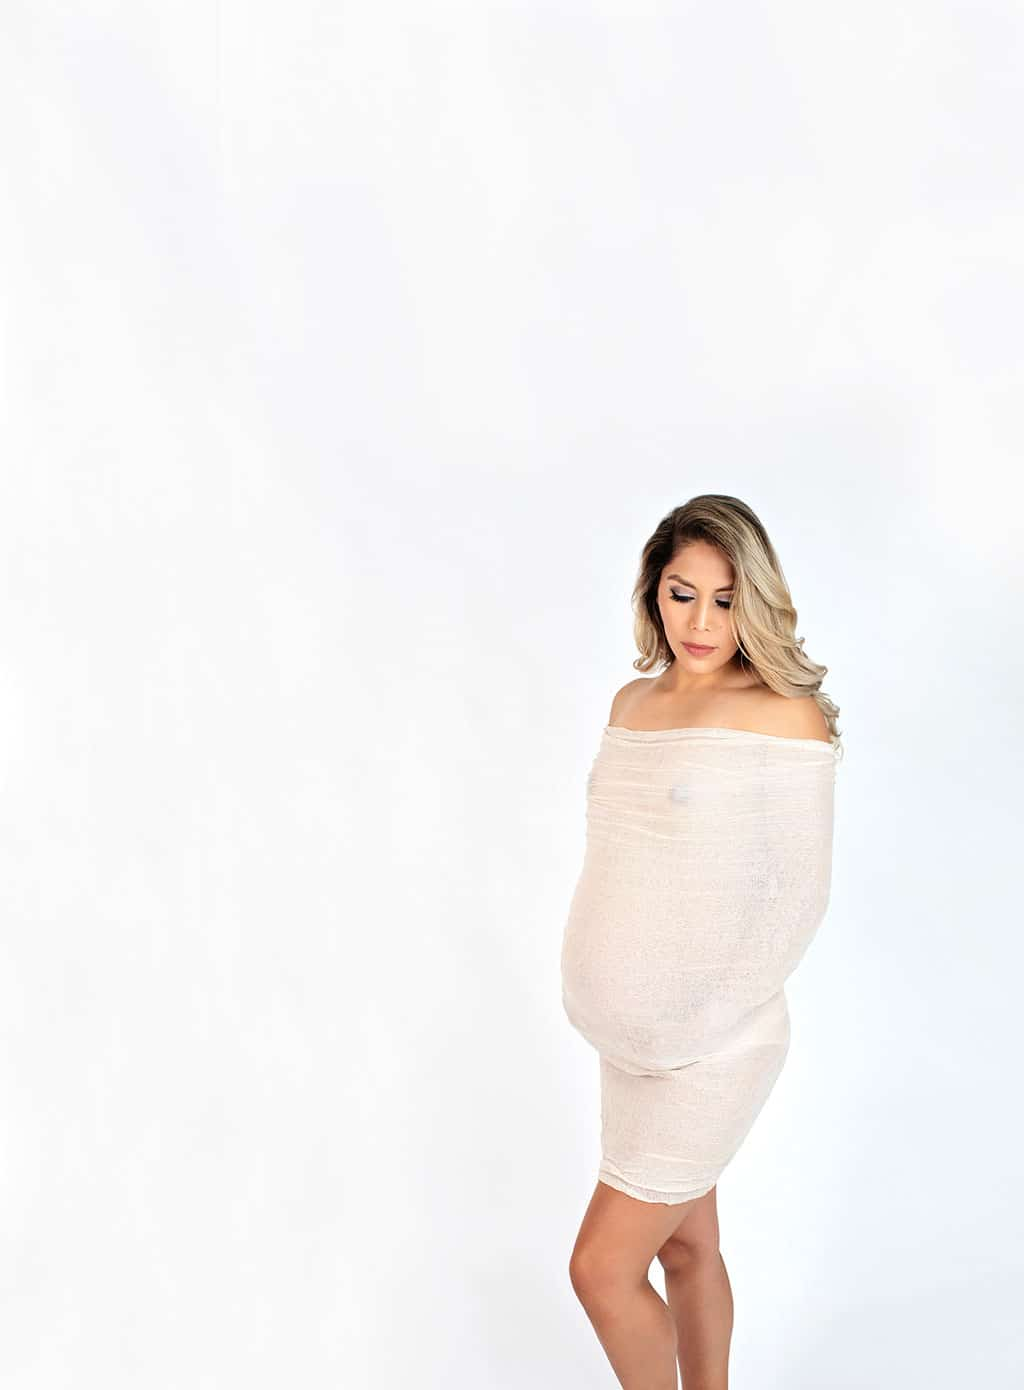 semi-nude maternity session